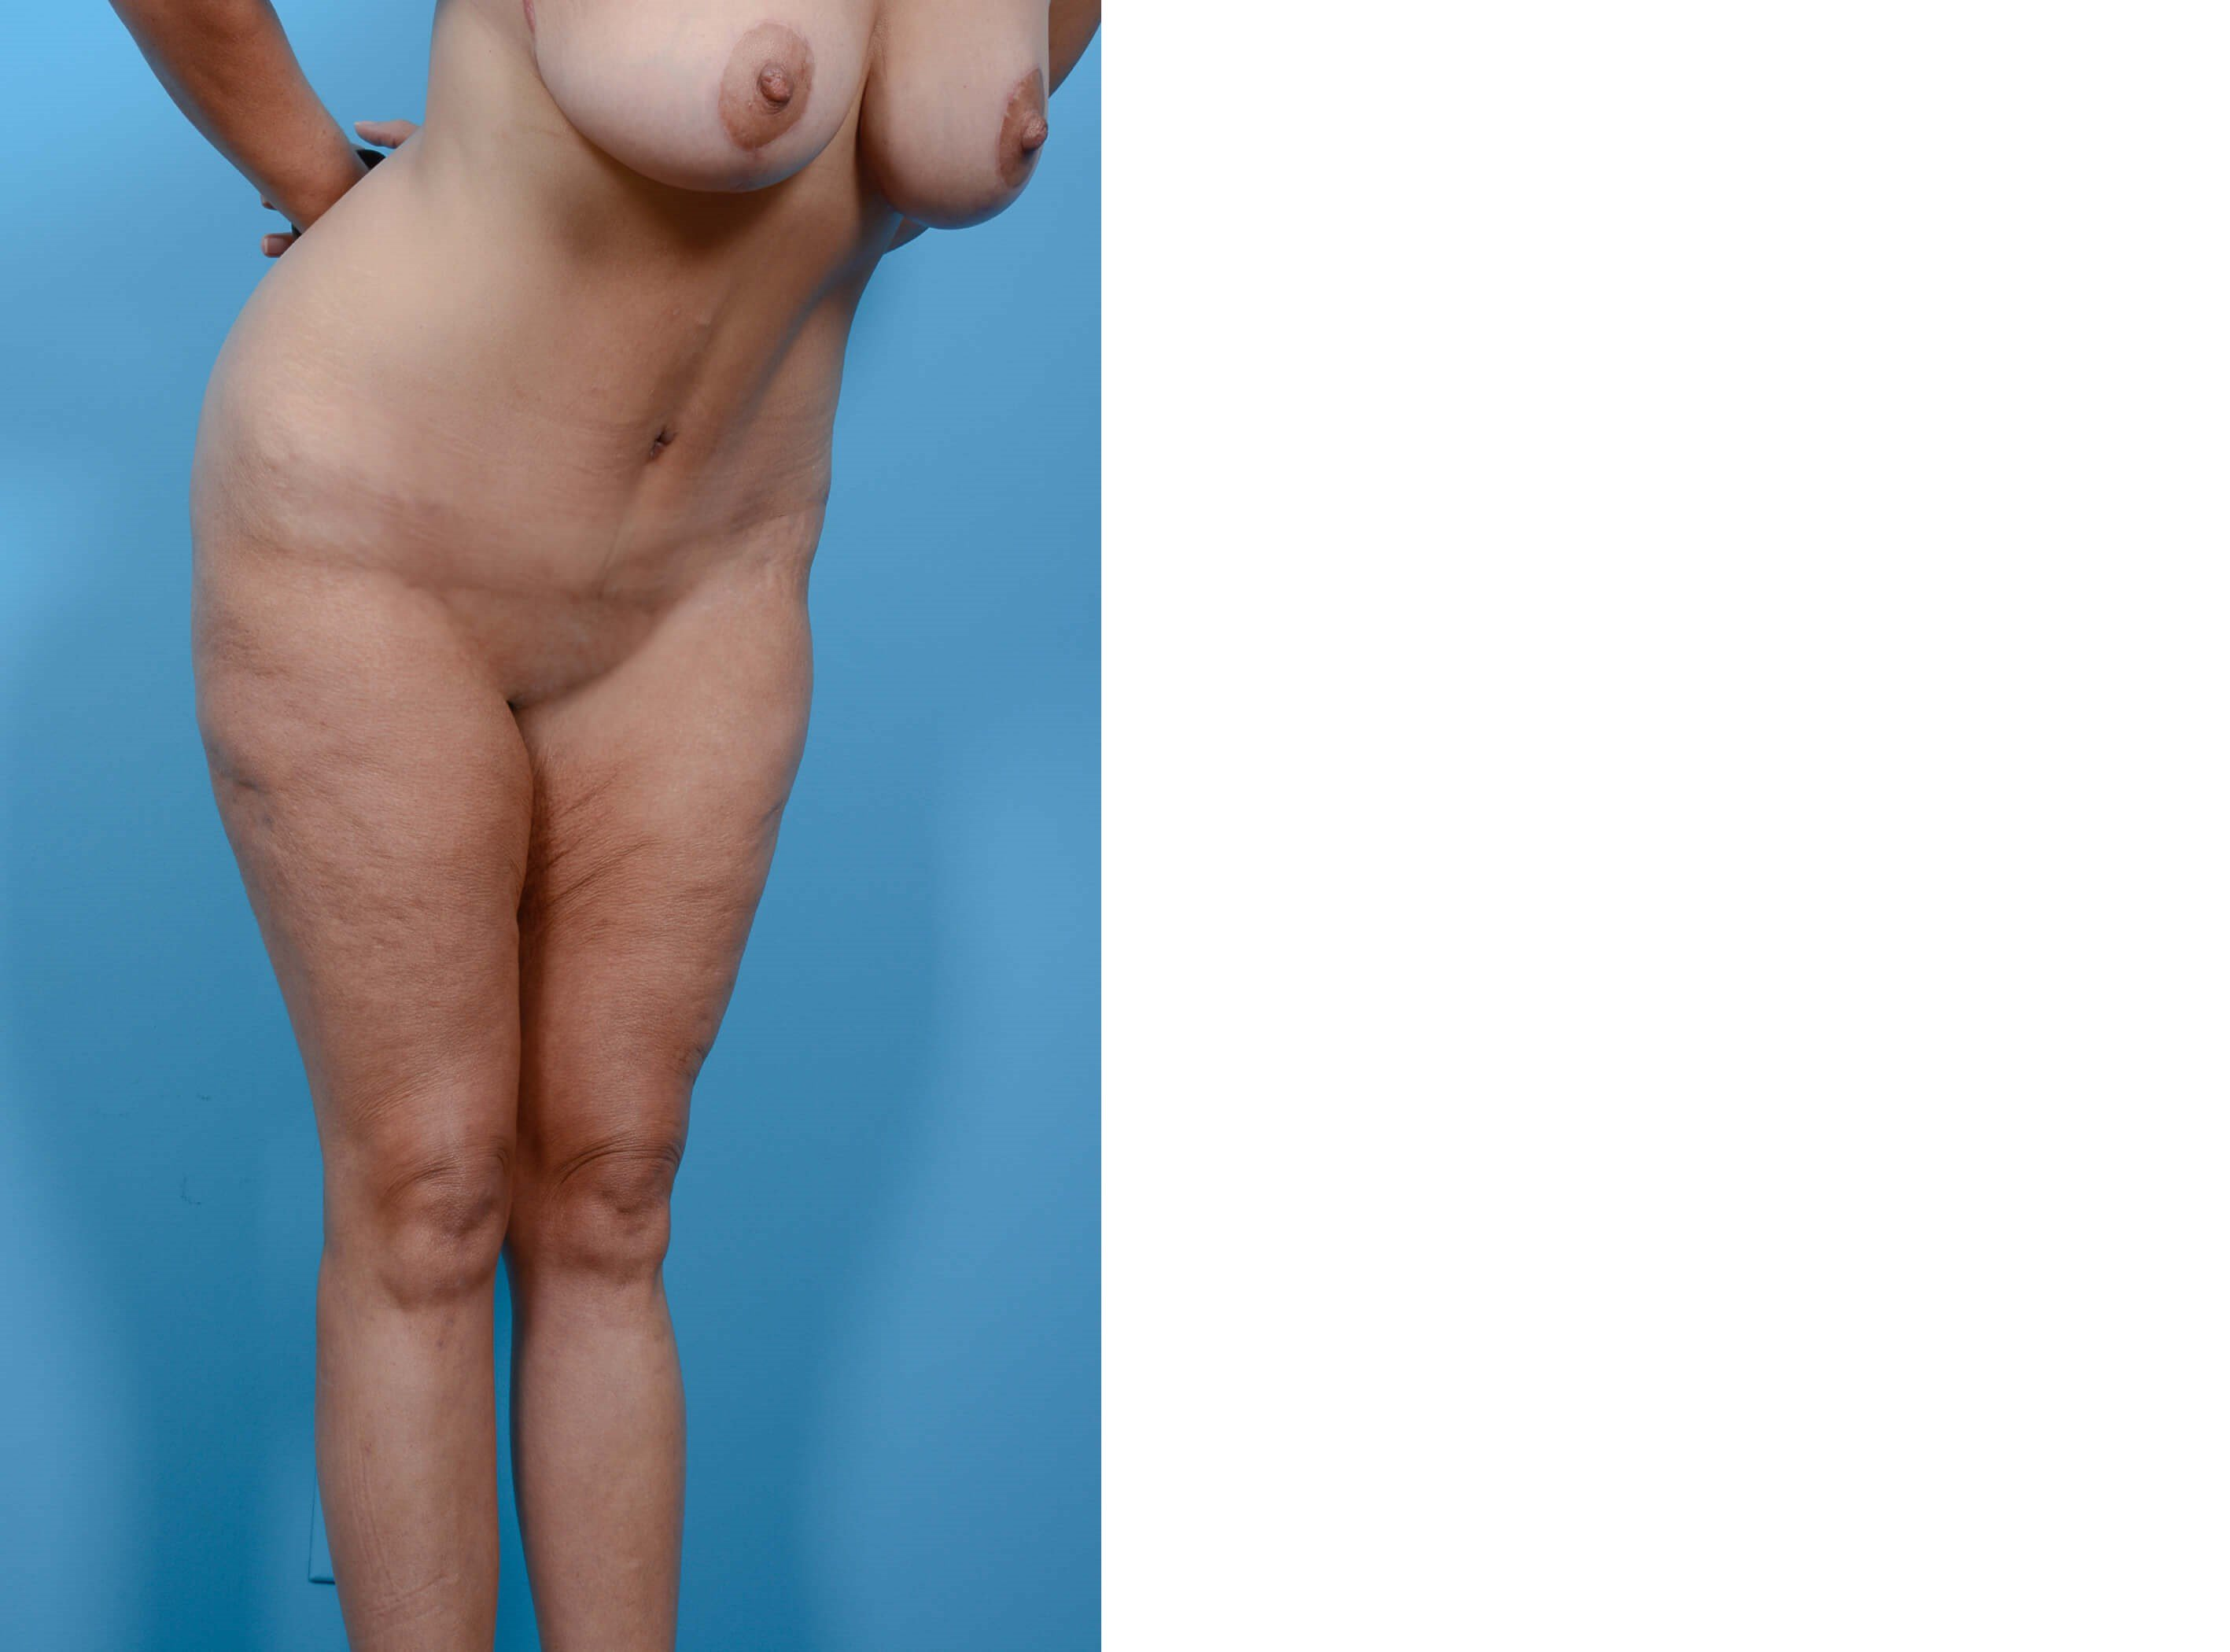 BREAST LIFT/TUMMY TUCK PROFILE After